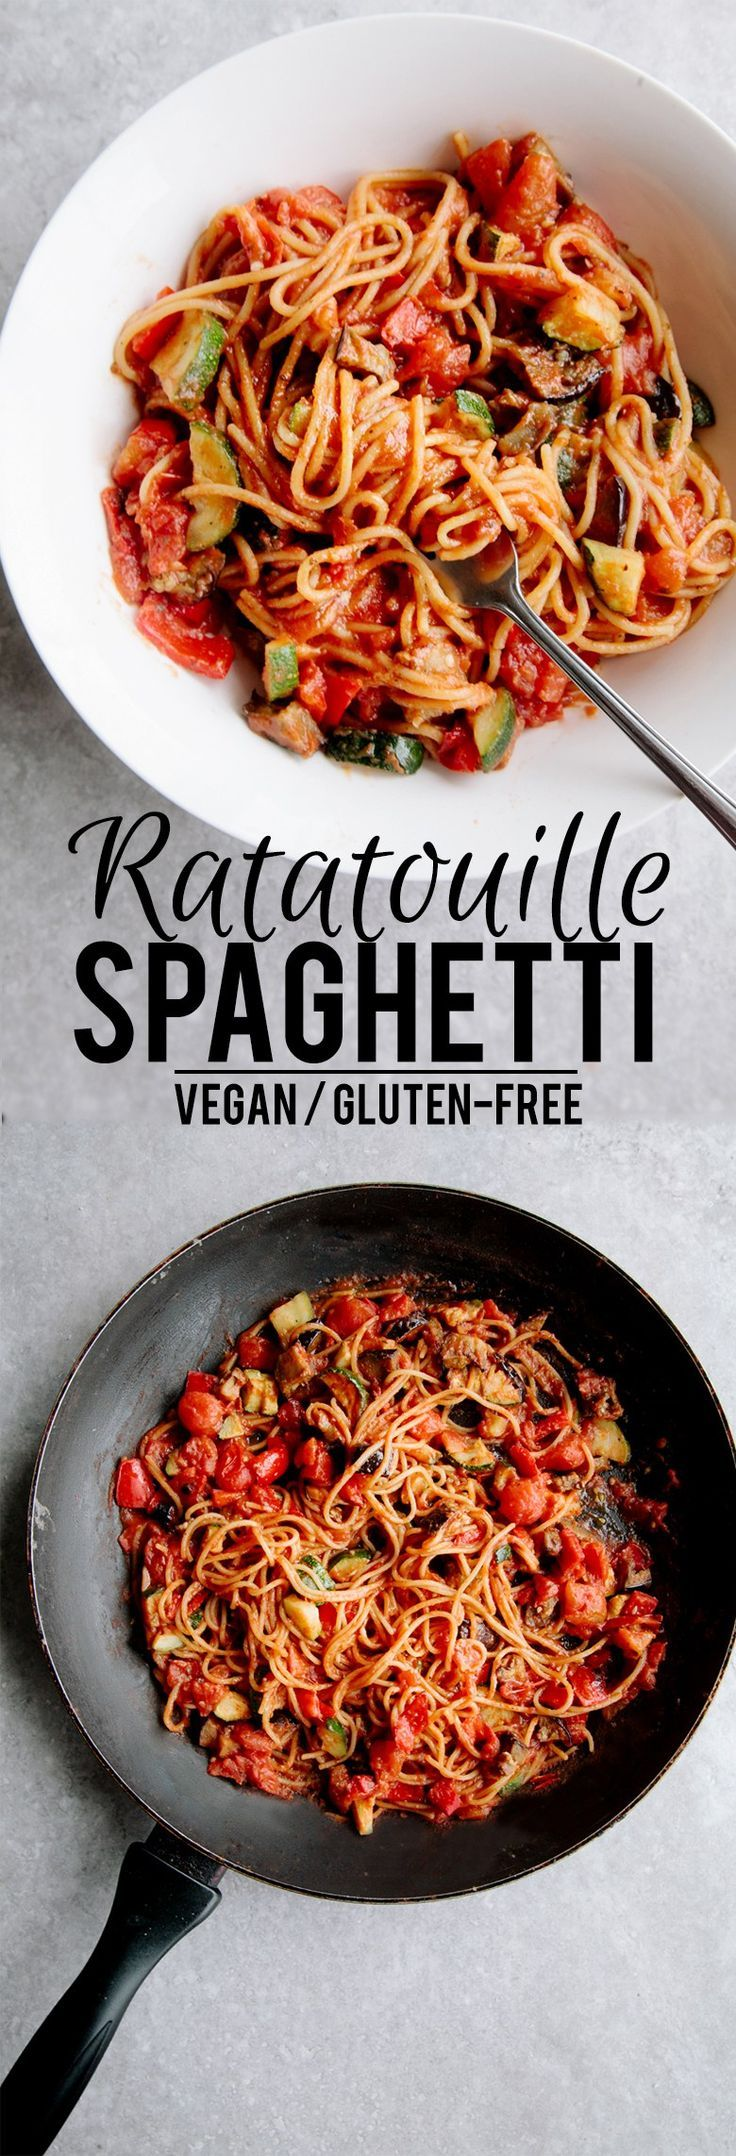 One-Pot Ratatouille Spaghetti (Vegan + Gluten Free)                                                                                                                                                                                 More